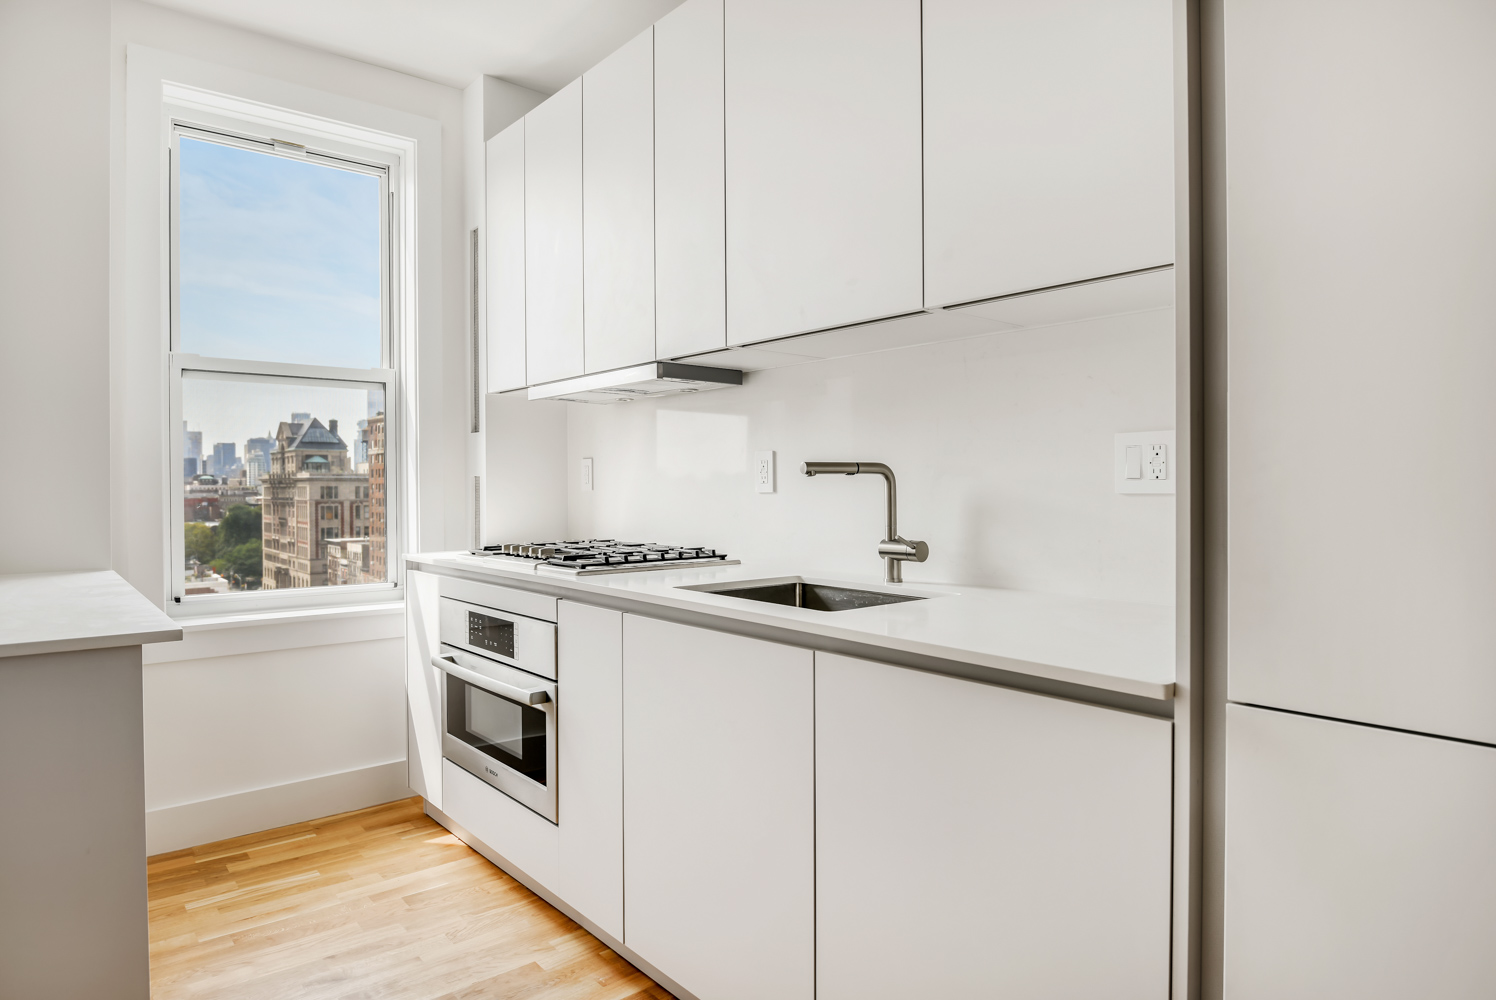 301 East 21st St, 12E - Gramercy - Union Square, New York